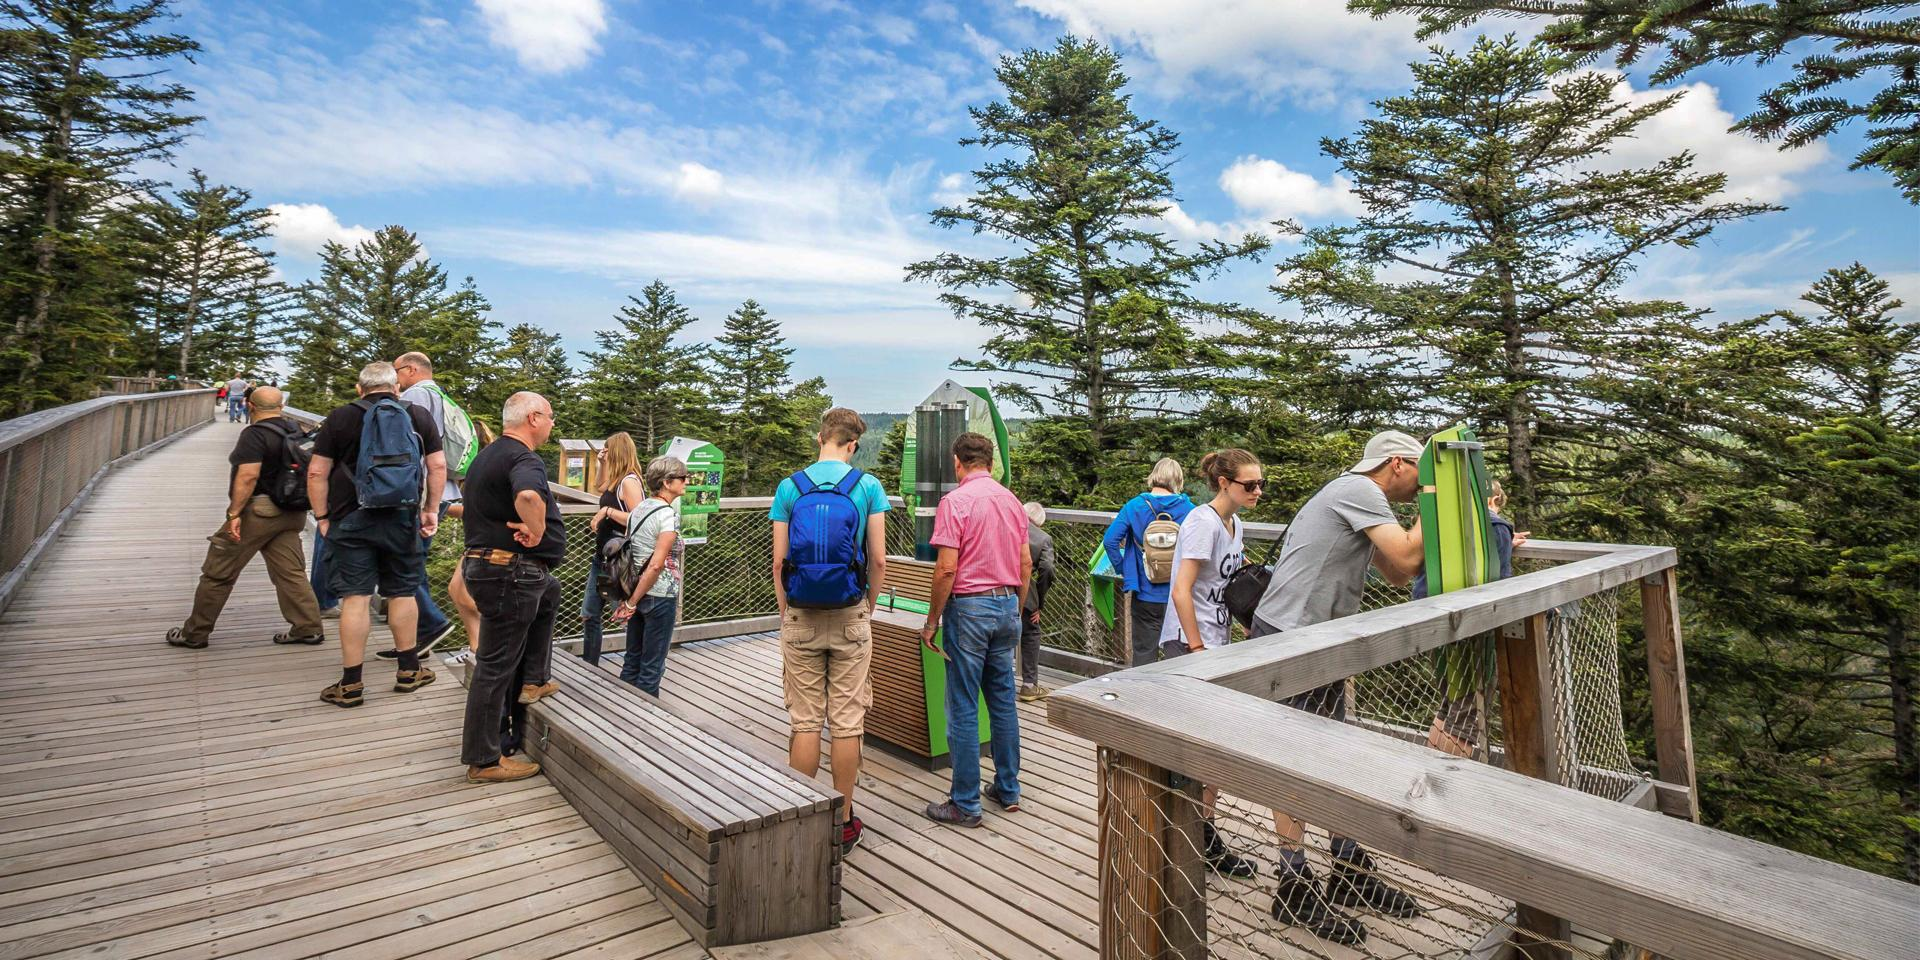 Guided tours of the Treetop Walk